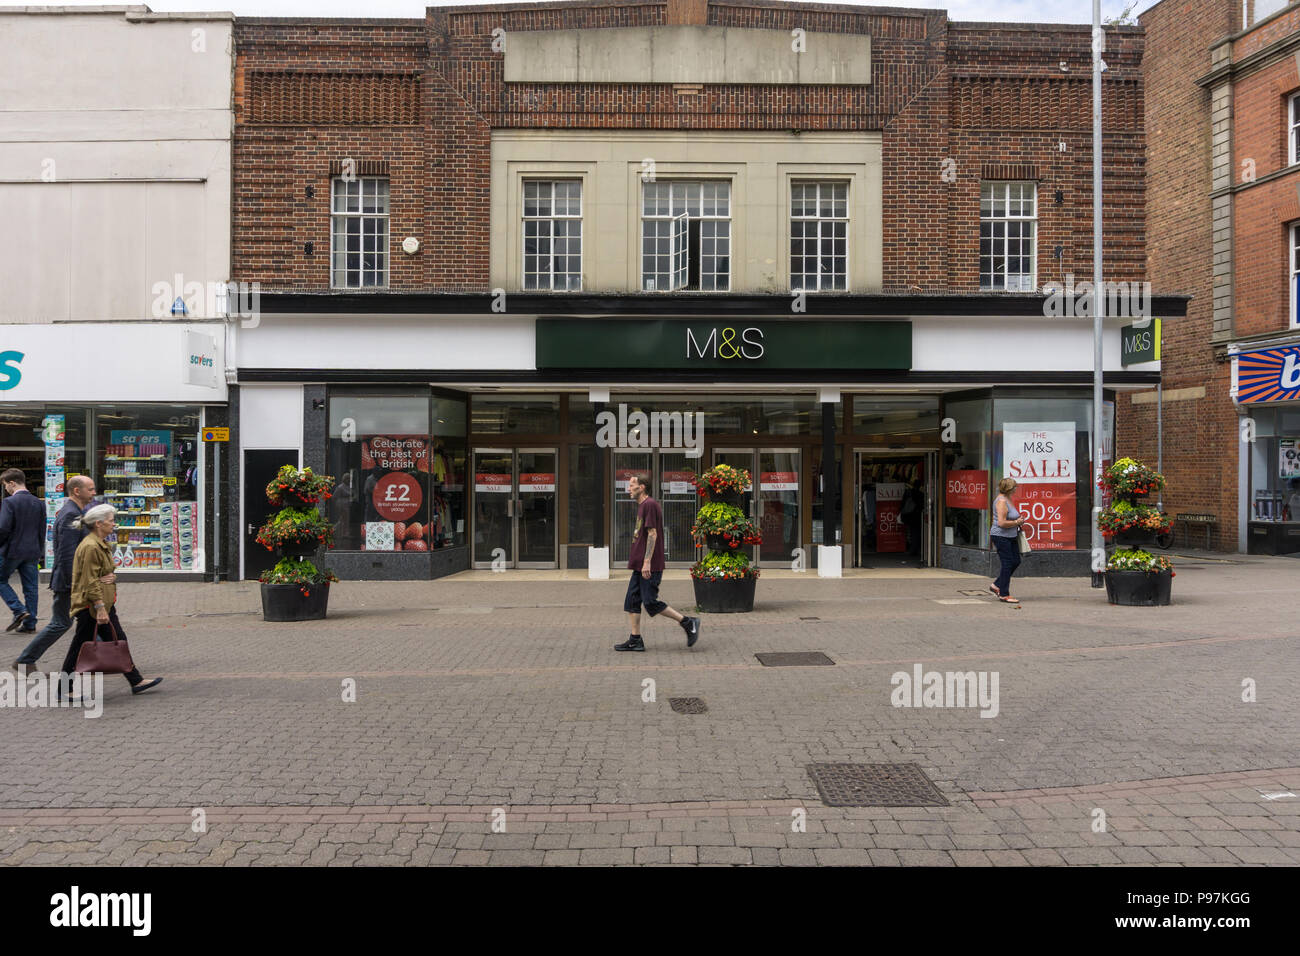 Marks and Spencer store, High Street, Kettering, Northamptonshire, UK; affected by the firm's closure plans and due to close on 11 August 2018 - Stock Image